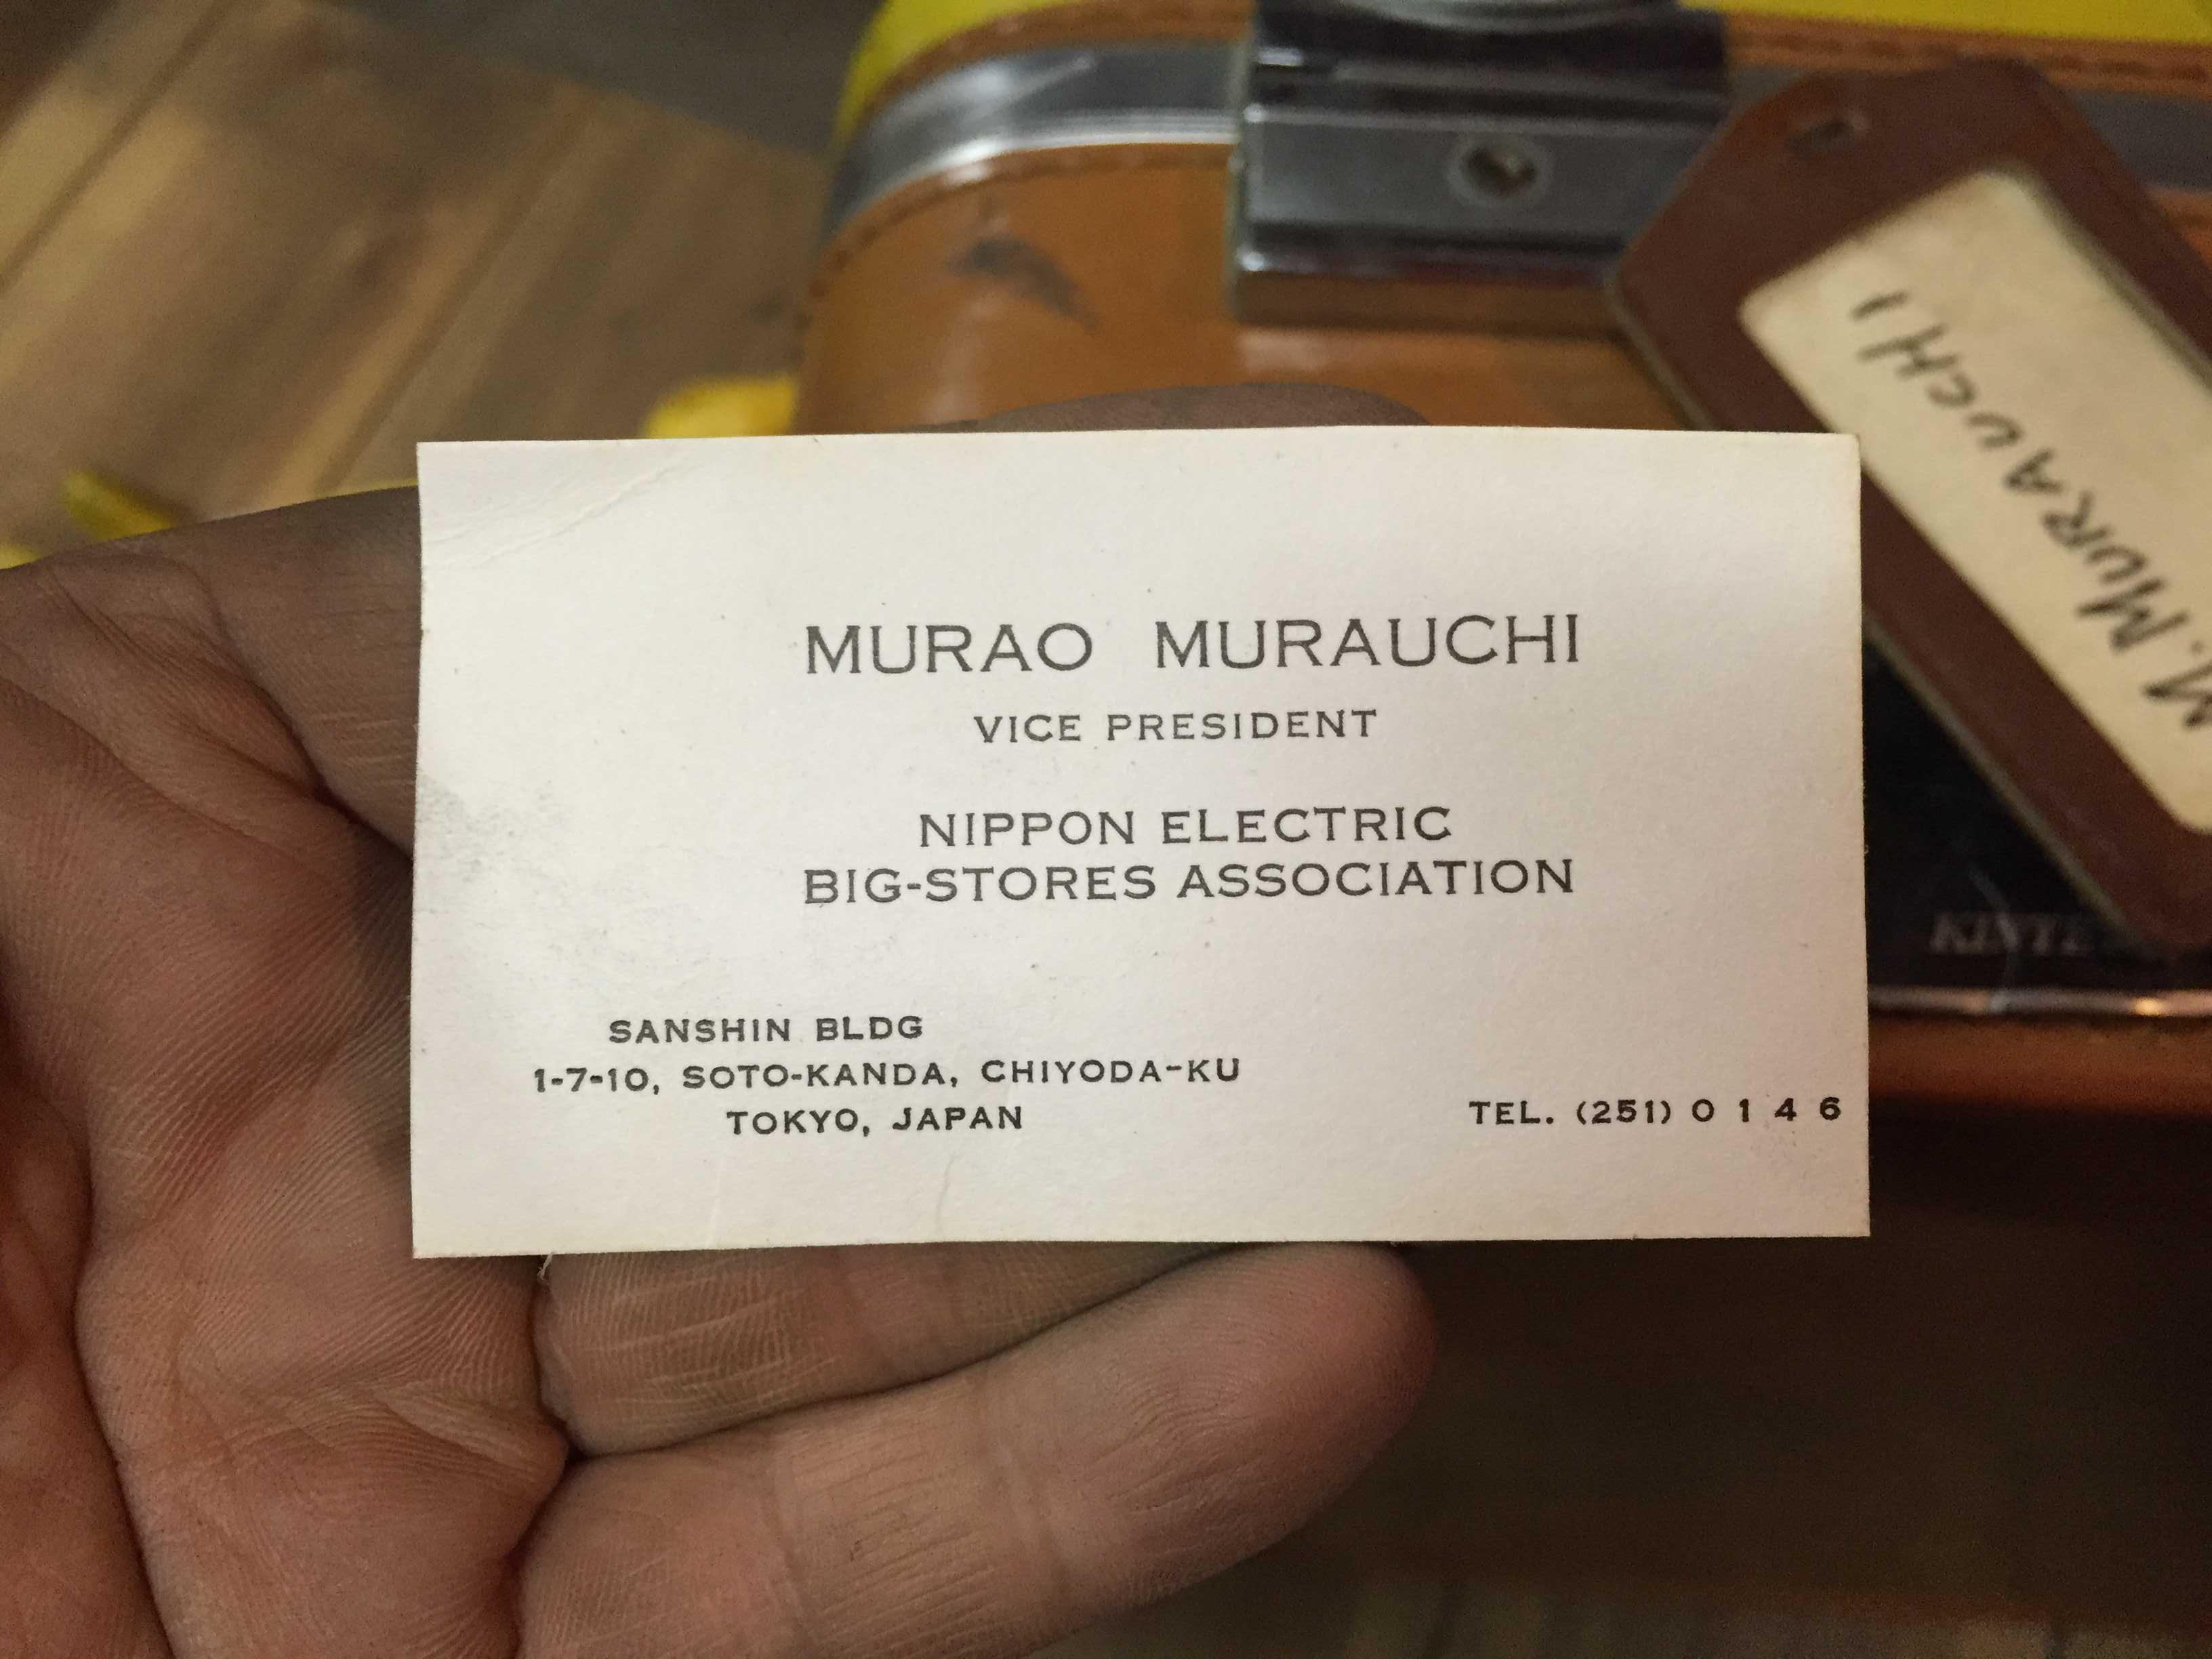 NEBAの名刺: MURAO MURAUCHI  VICE PRESIDENT - NIPPON ELECTRIC BIG-STORES ASSOCIATION